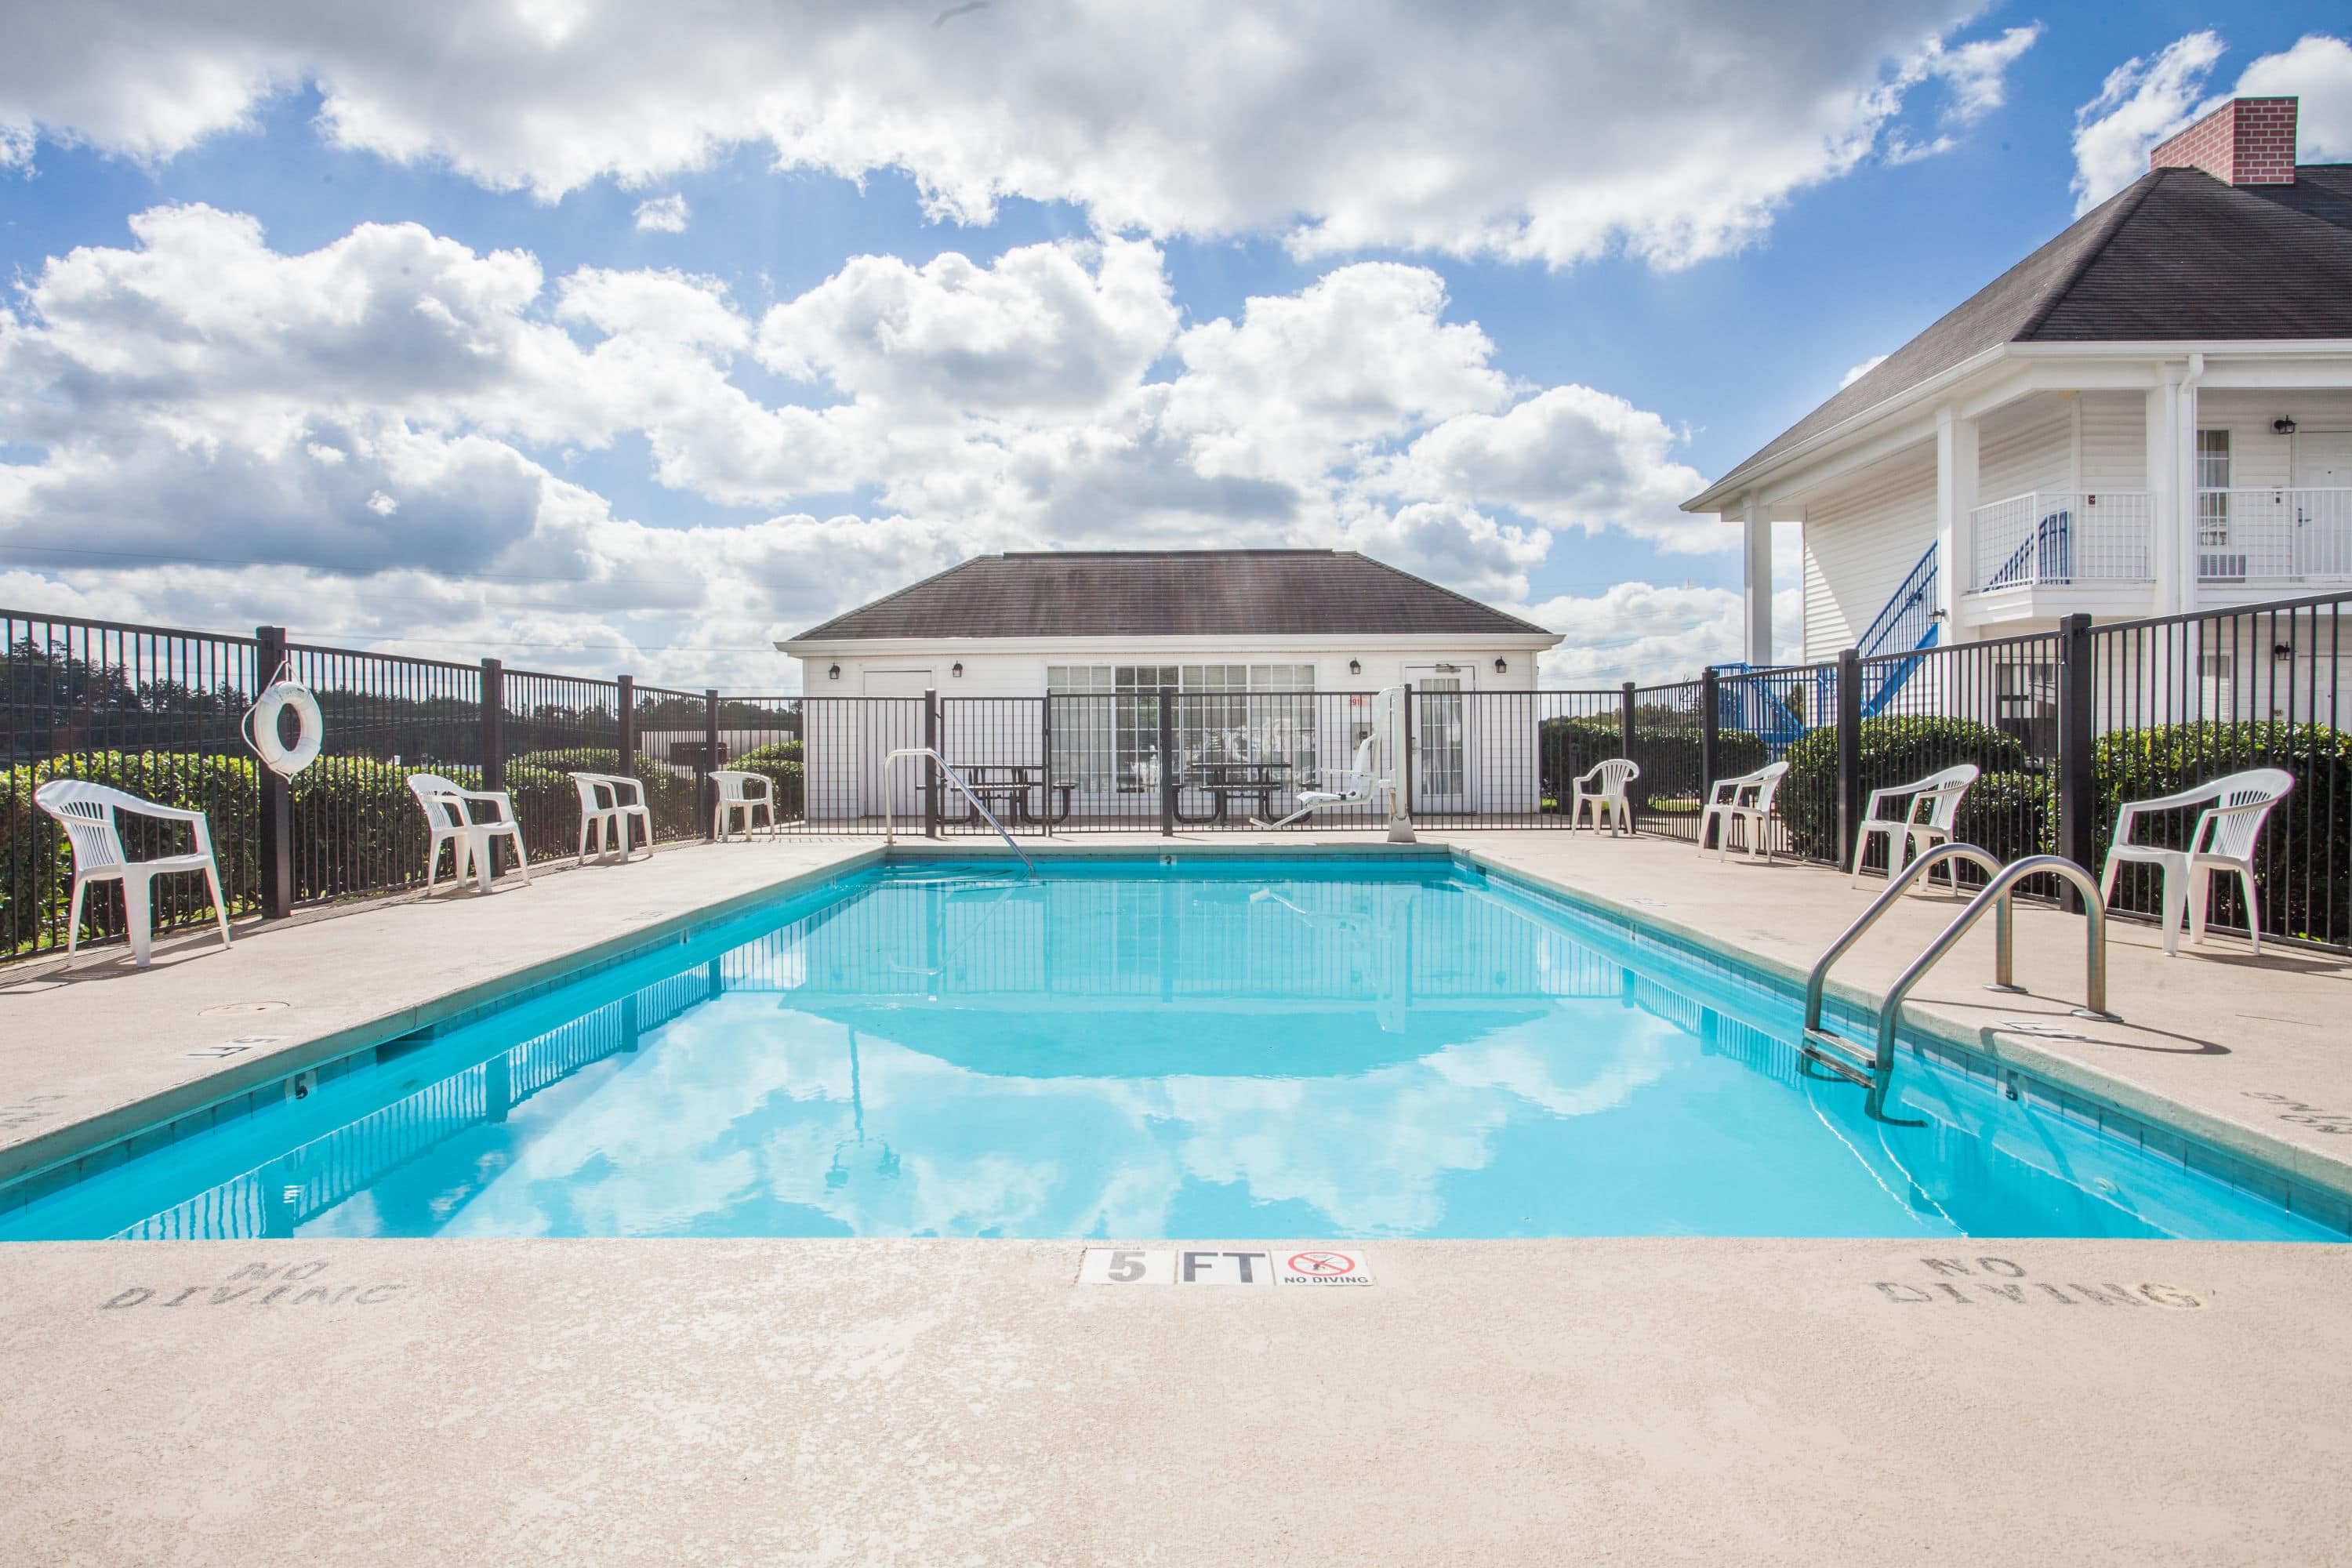 Ordinaire Pool At The Baymont By Wyndham Hickory In Hickory, North Carolina